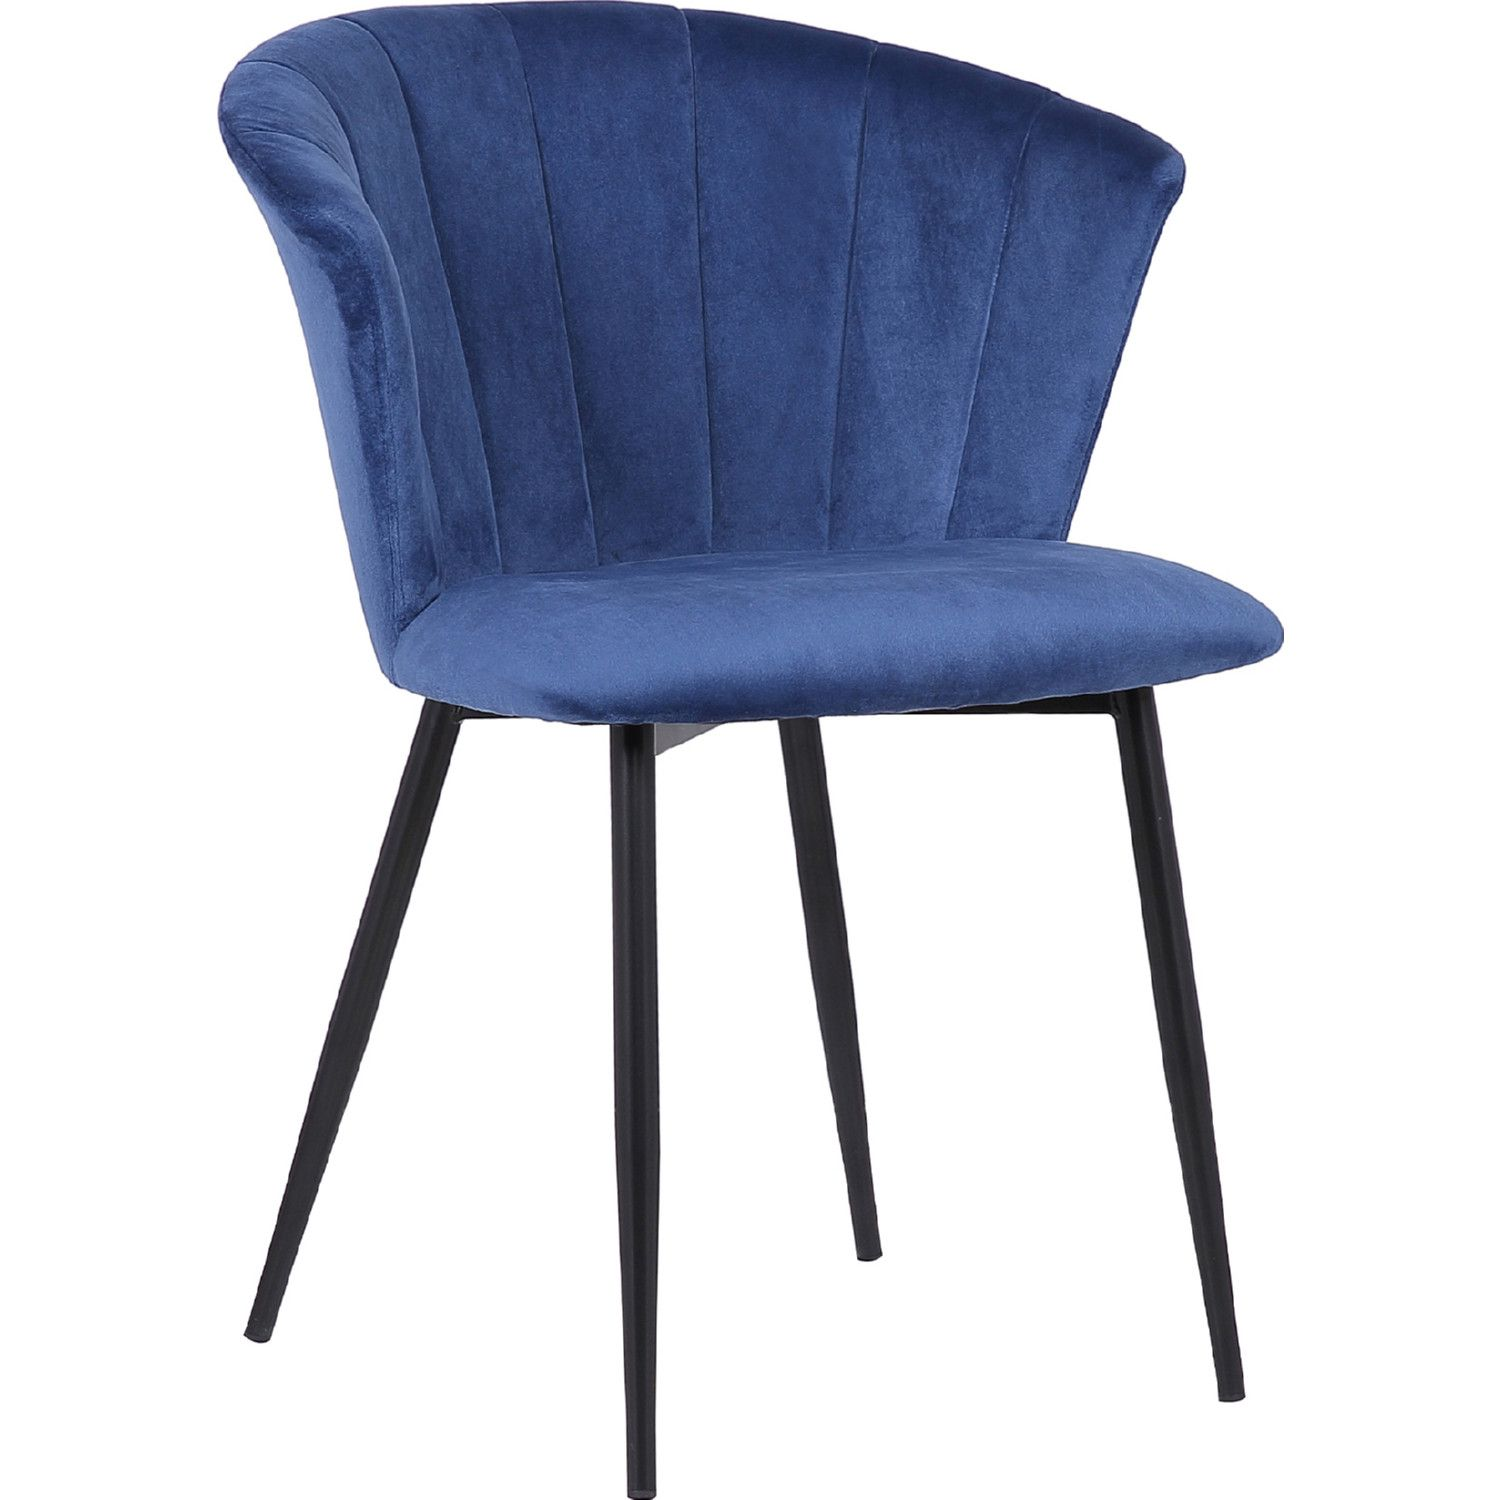 Armen Living Lcluchblblue Lulu Dining Chair Channel Tufted Blue